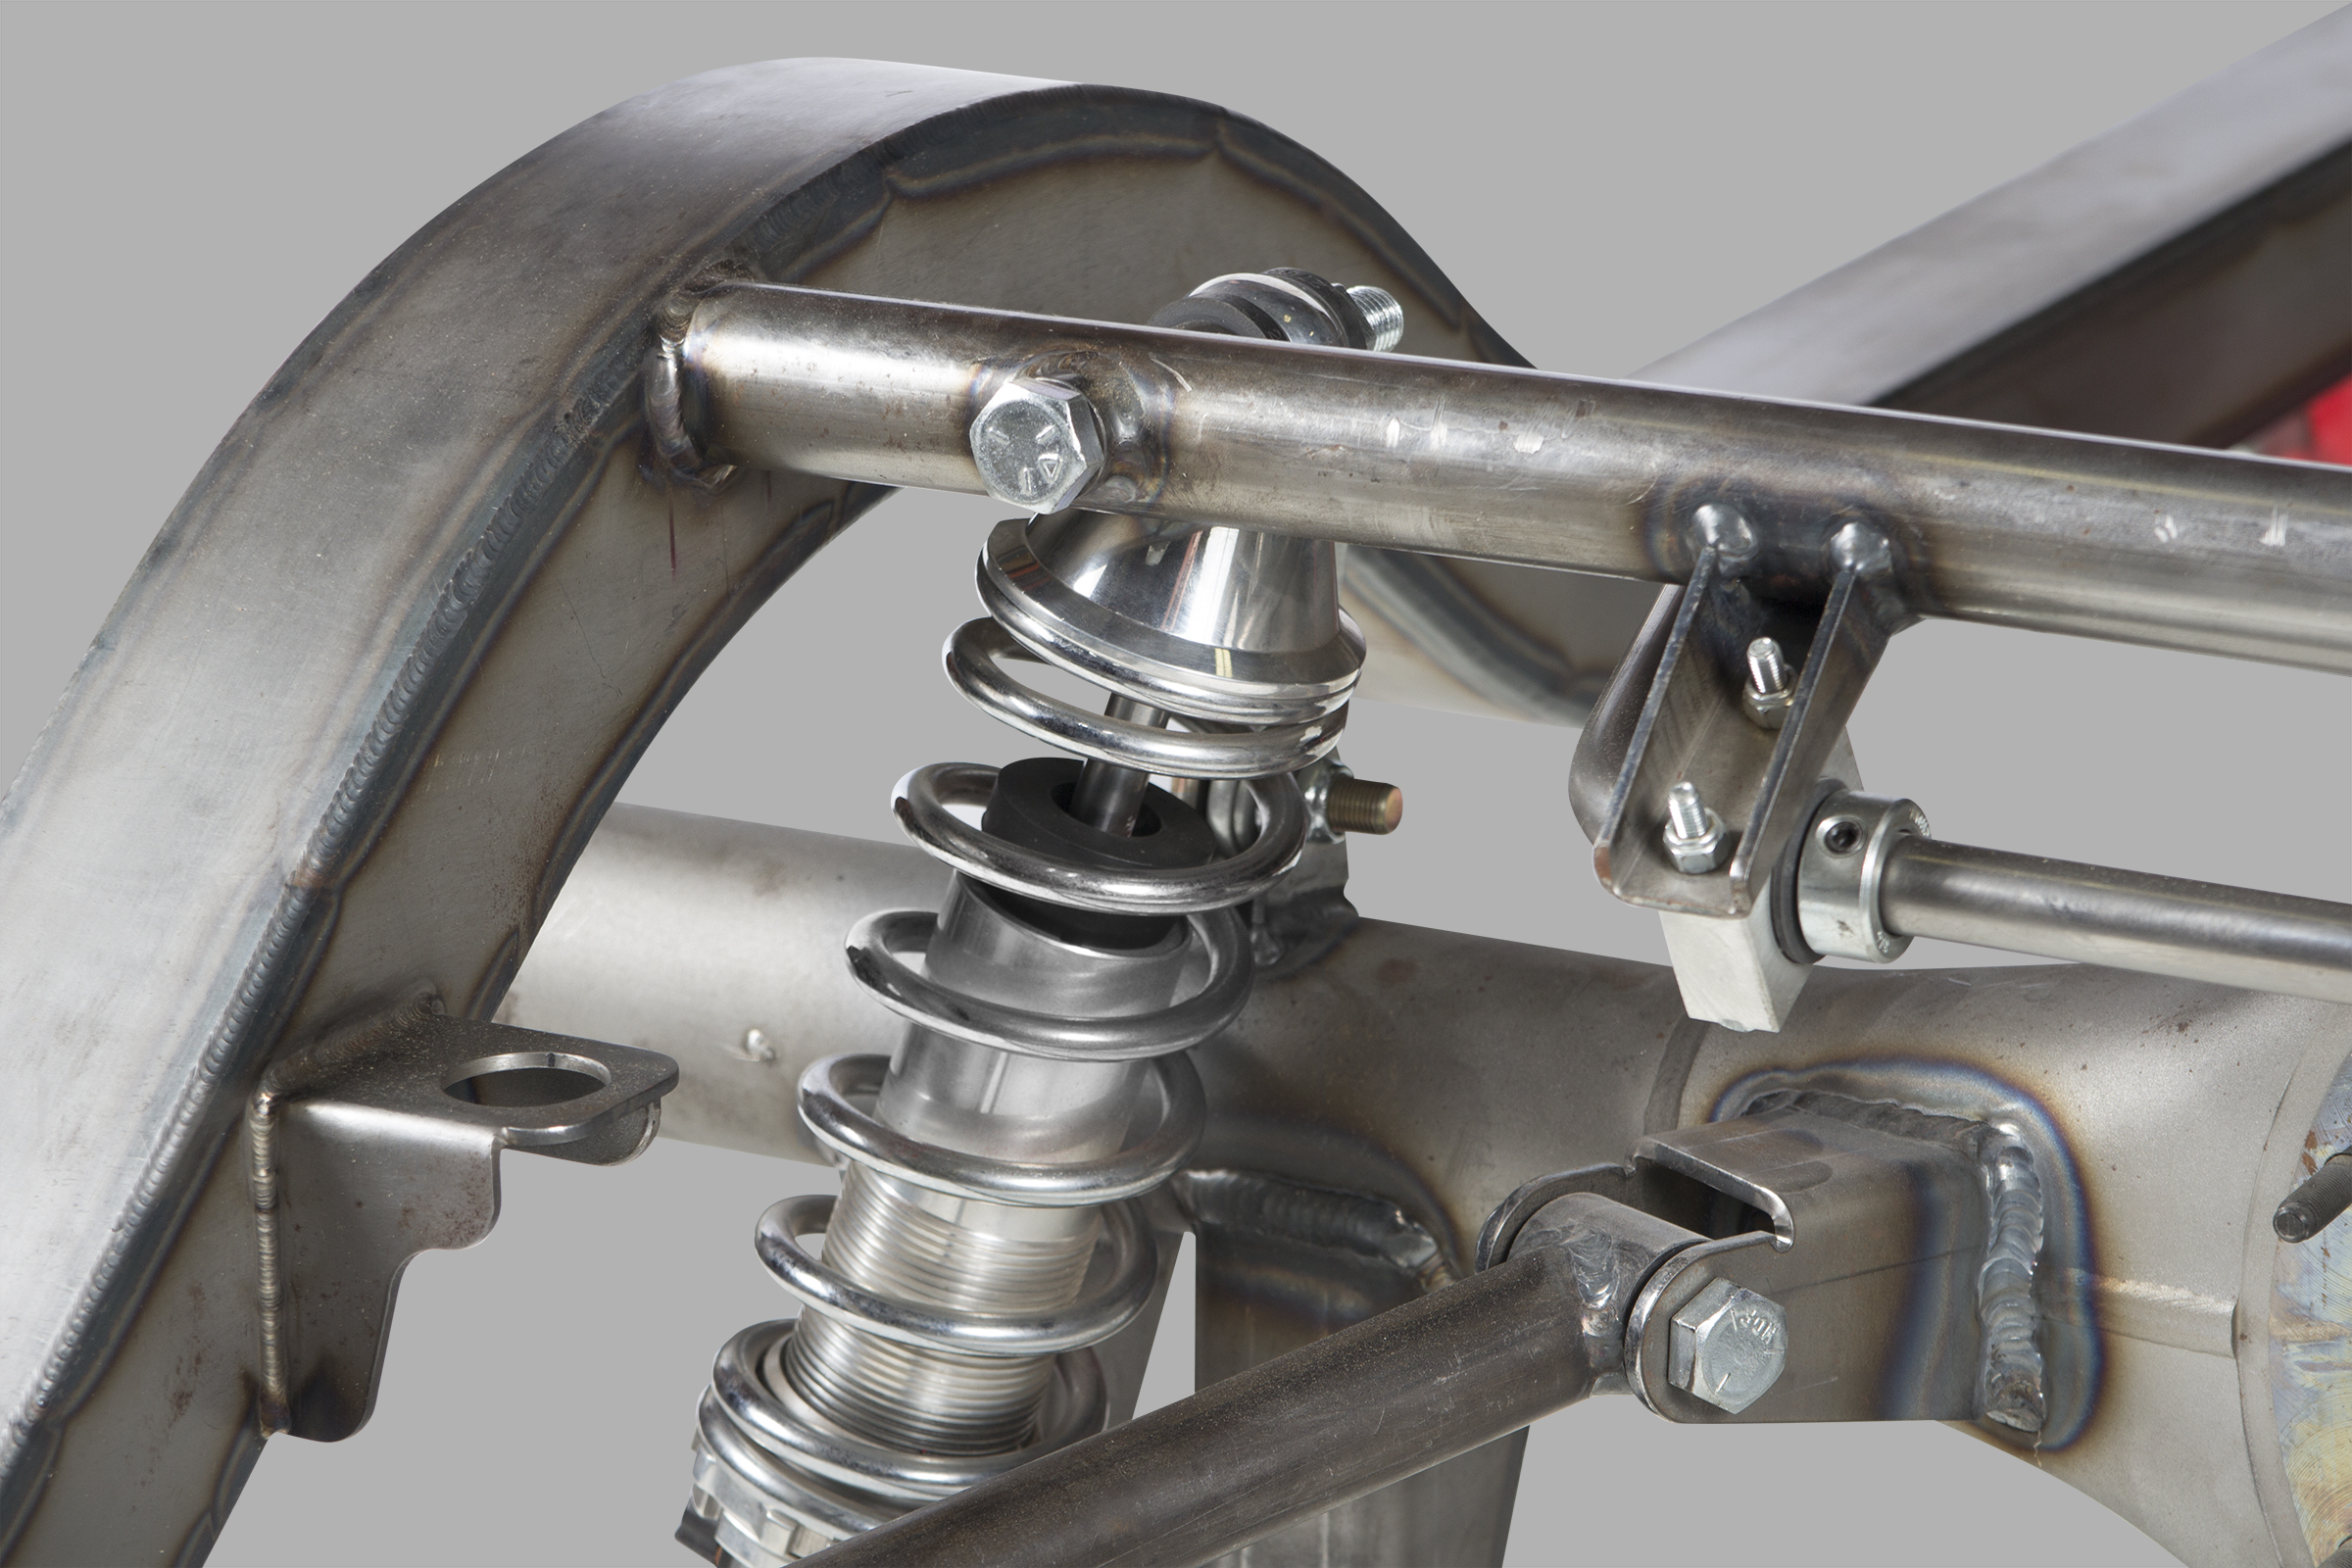 Tri 5 Chevy PRO-G Front, 4 Link Rear Complete Frame